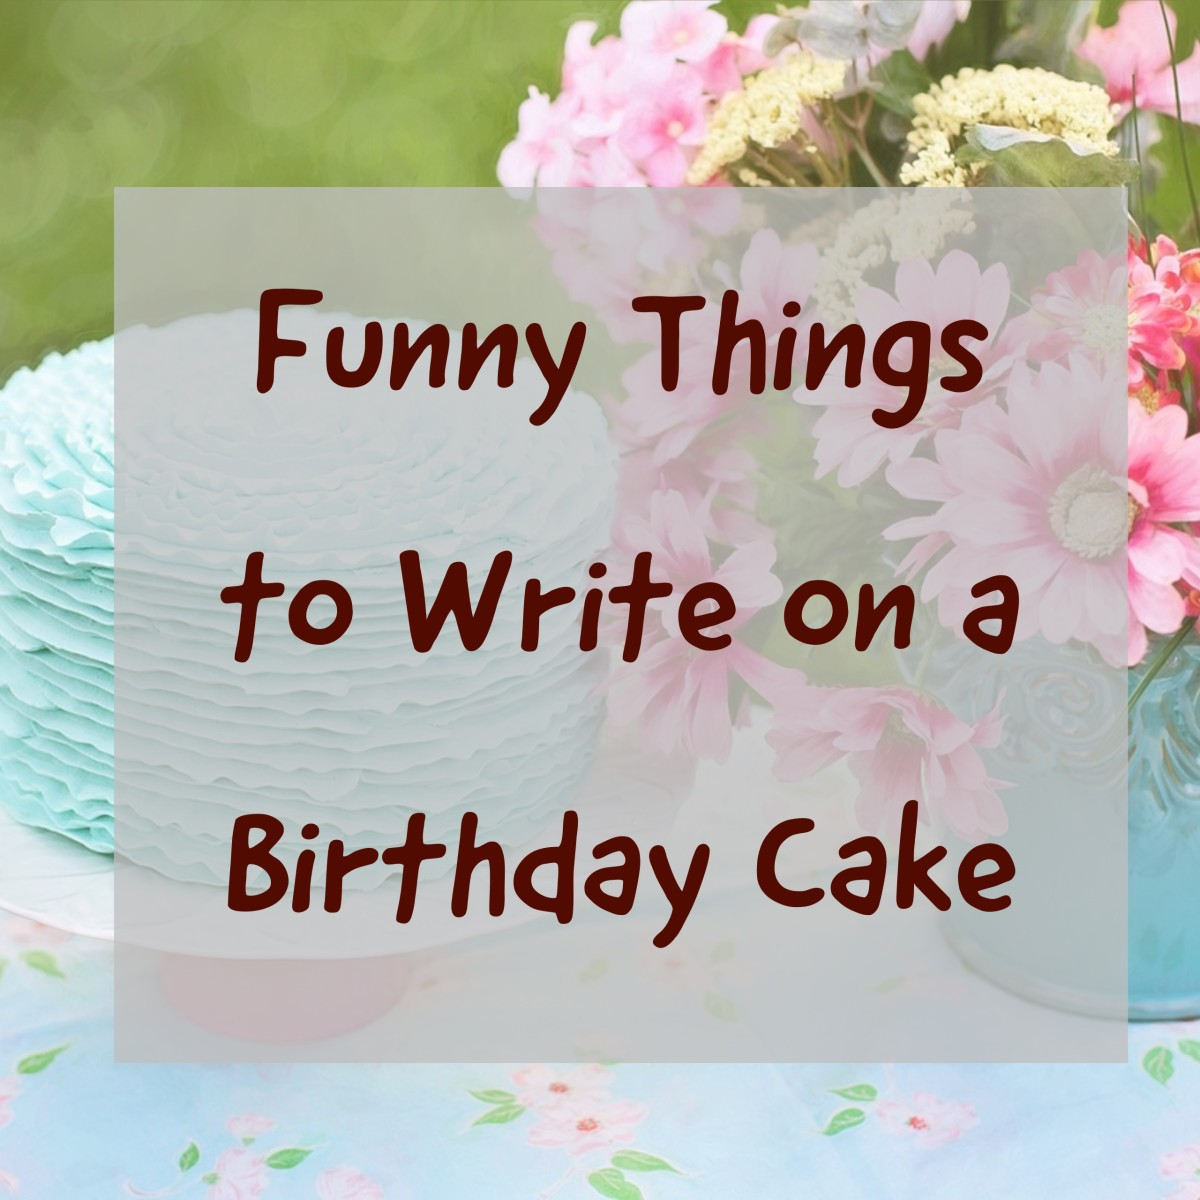 Astounding Over 100 Funny Things To Write On A Birthday Cake Holidappy Funny Birthday Cards Online Aboleapandamsfinfo